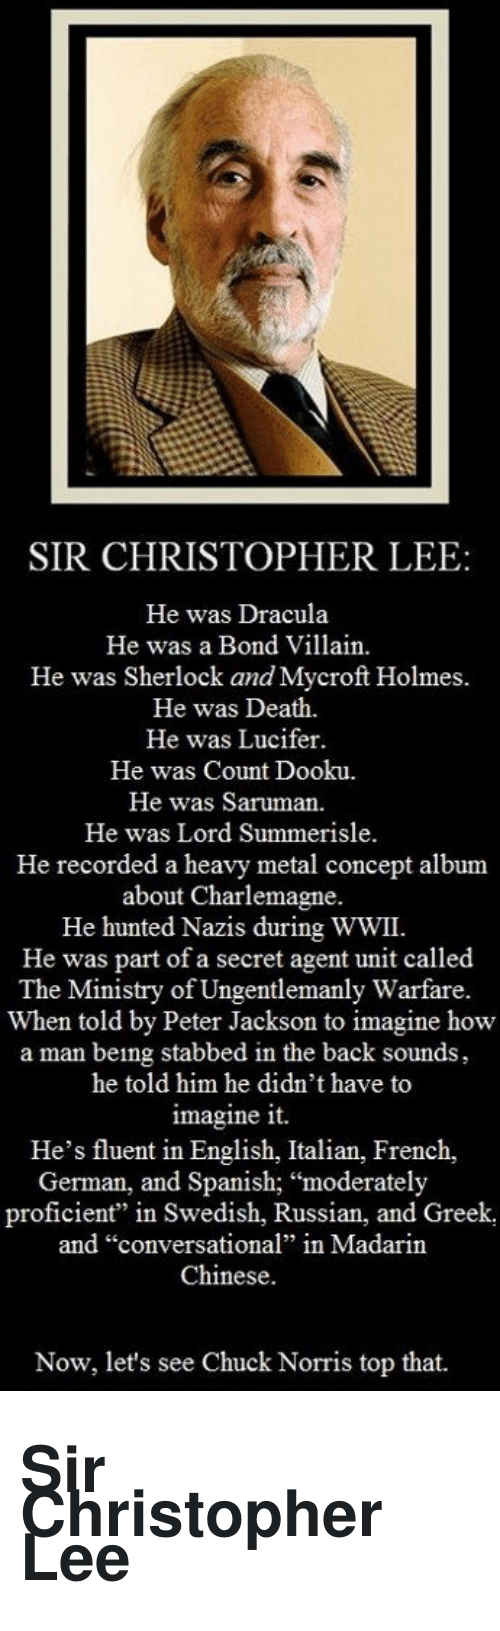 "Stabbed In The Back: SIR CHRISTOPHER LEE  He was Dracula  He was a Bond Villain  He was Sherlock and Mycroft Holmes.  He was Death.  He was Lucifer.  He was Count Dooku.  He was Saruman  He was Lord Summerisle.  He recorded a heavy metal concept album  about Charlemagne.  He hunted Nazis during WWII.  He was part of a secret agent unit called  The Ministry of Ungentlemanly Warfare.  When told by Peter Jackson to imagine how  a man being stabbed in the back sounds,  he told him he didn't have to  imagine it.  He's fluent in English, Italian, French,  German, and Spanish; ""moderately  proficient"" in Swedish, Russian, and Greek,  and ""conversational"" in Madarin  Chinese.  Now, let's see Chuck Norris top that. <h1><span>Sir Christopher Lee</span></h1>"